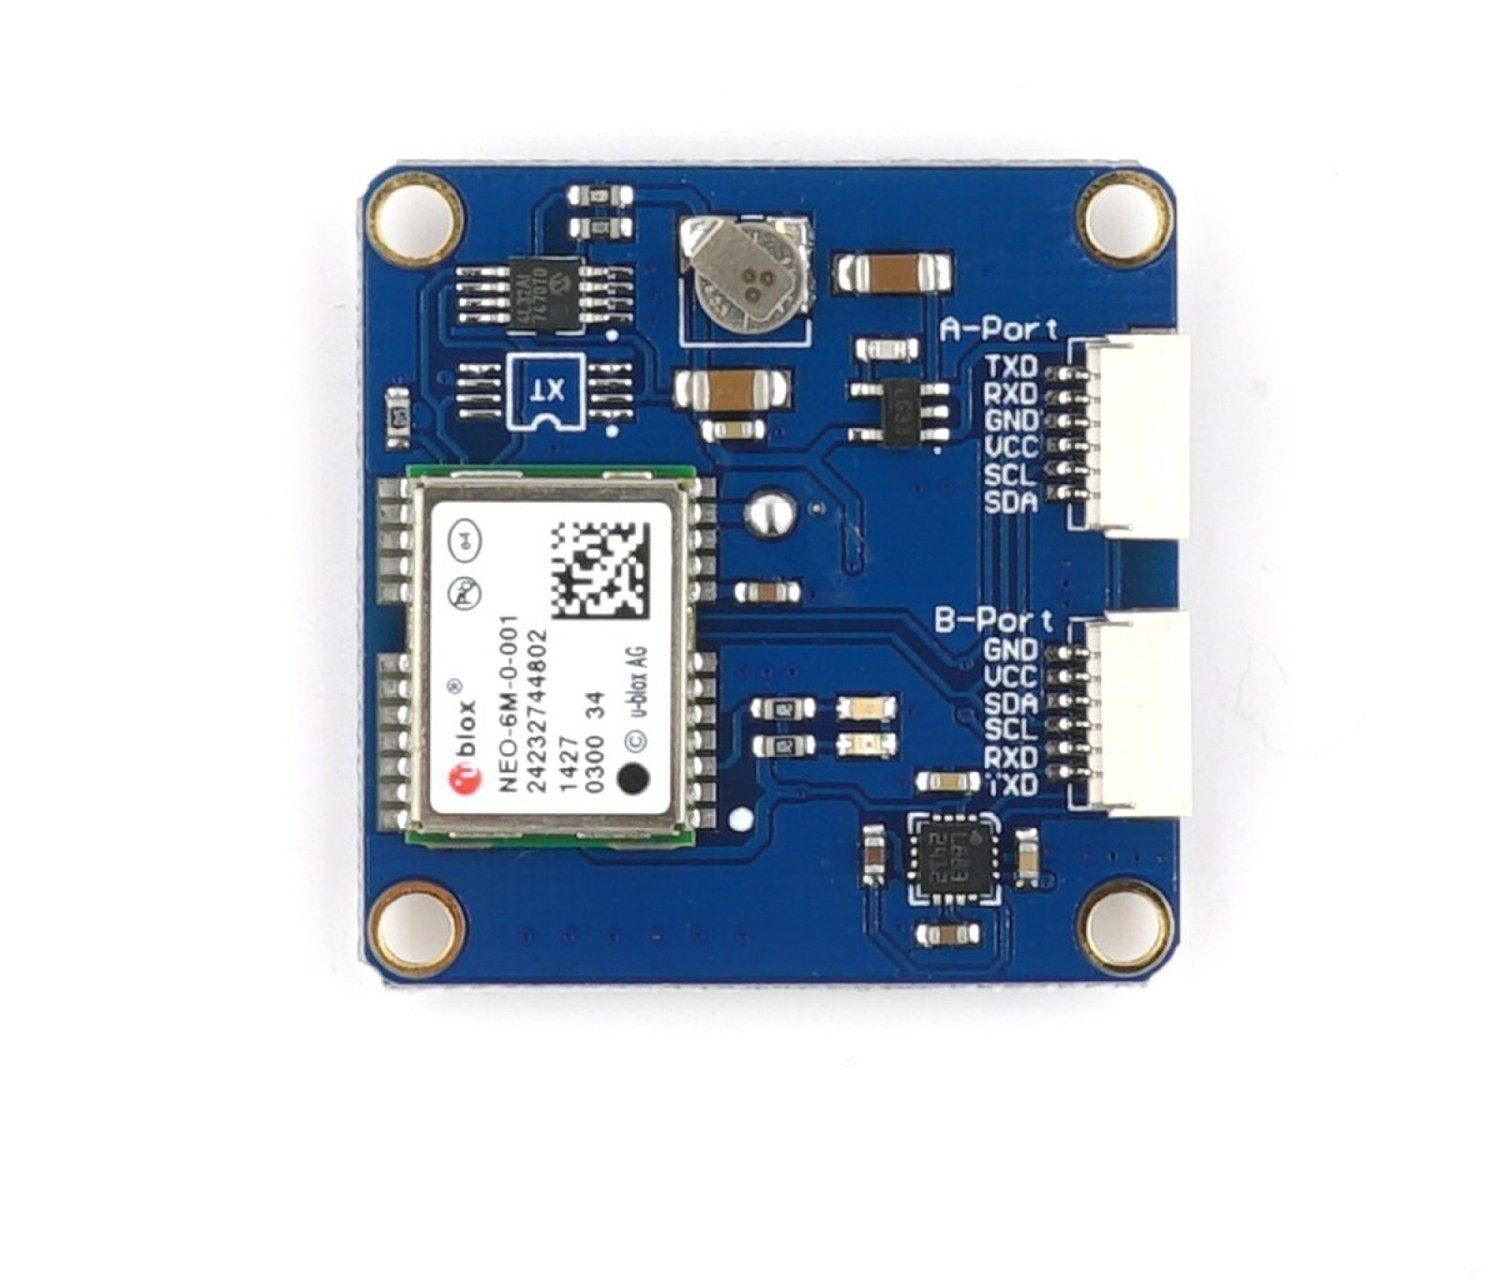 ARM MINIGPS NEO-6M GPS Module with on Board HMC5883l(Compass) for